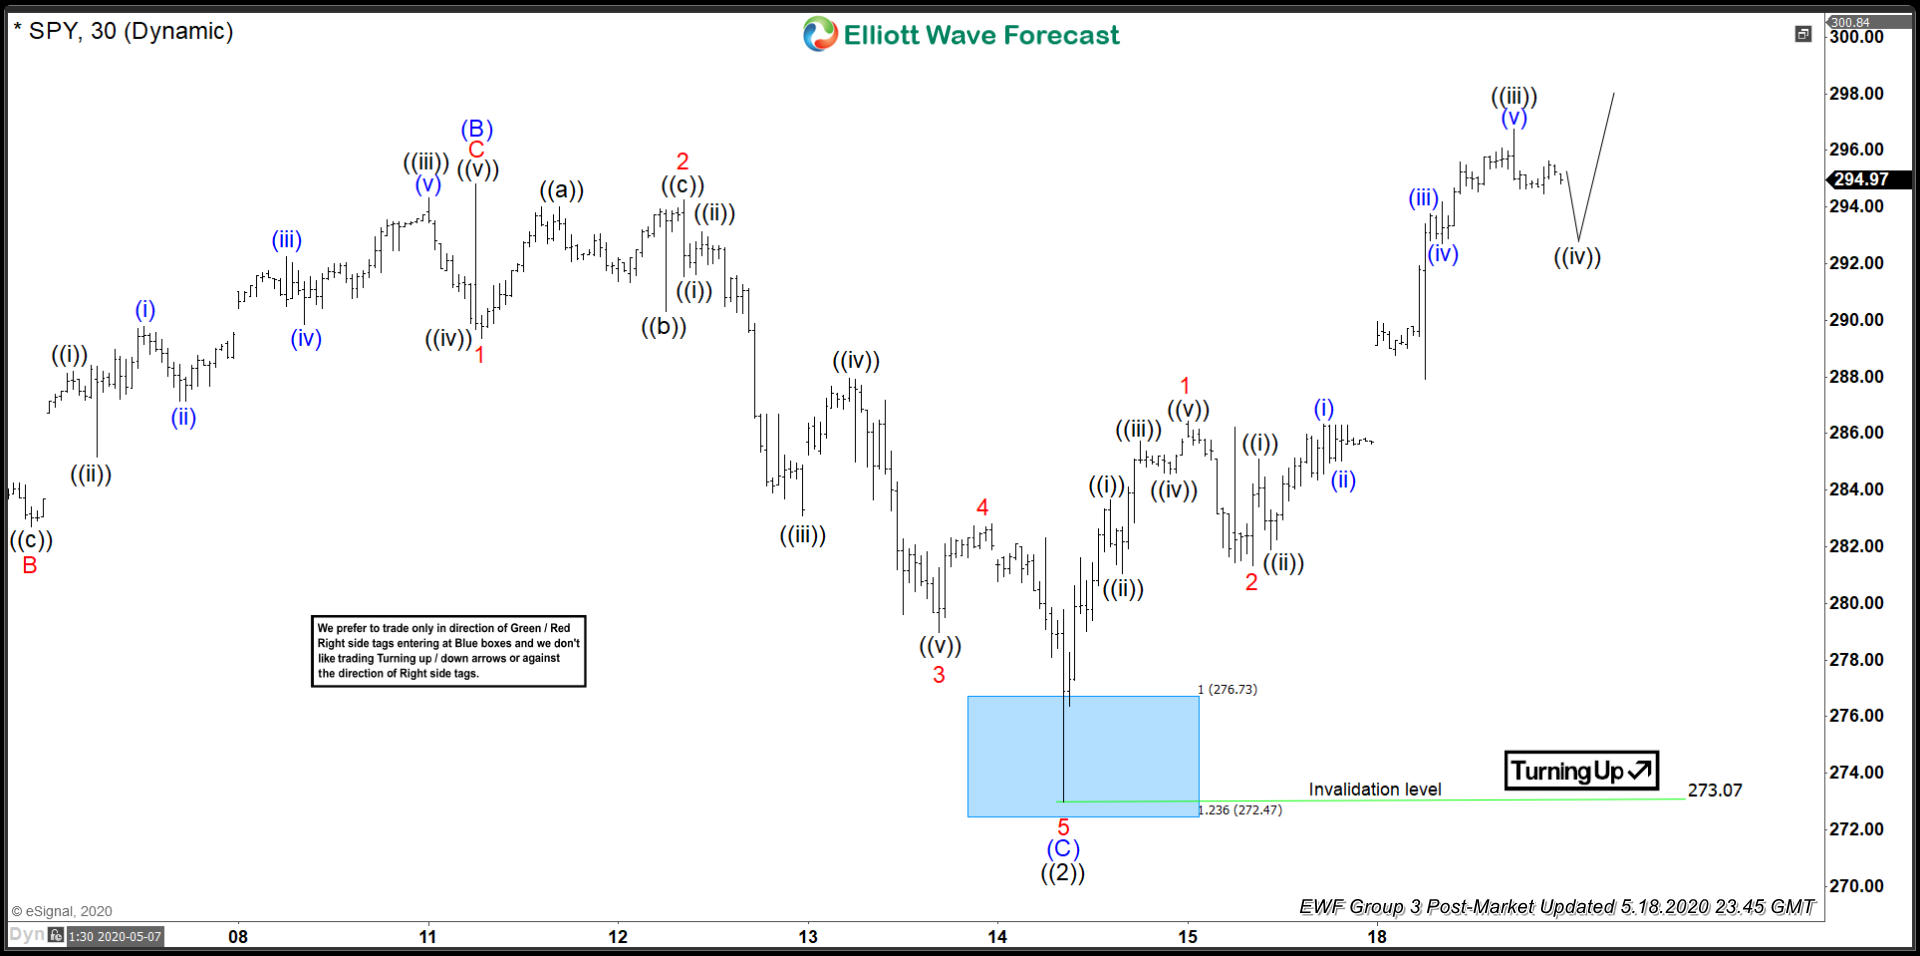 Elliott Wave View: SPY Has Resumed Wave 3 Higher